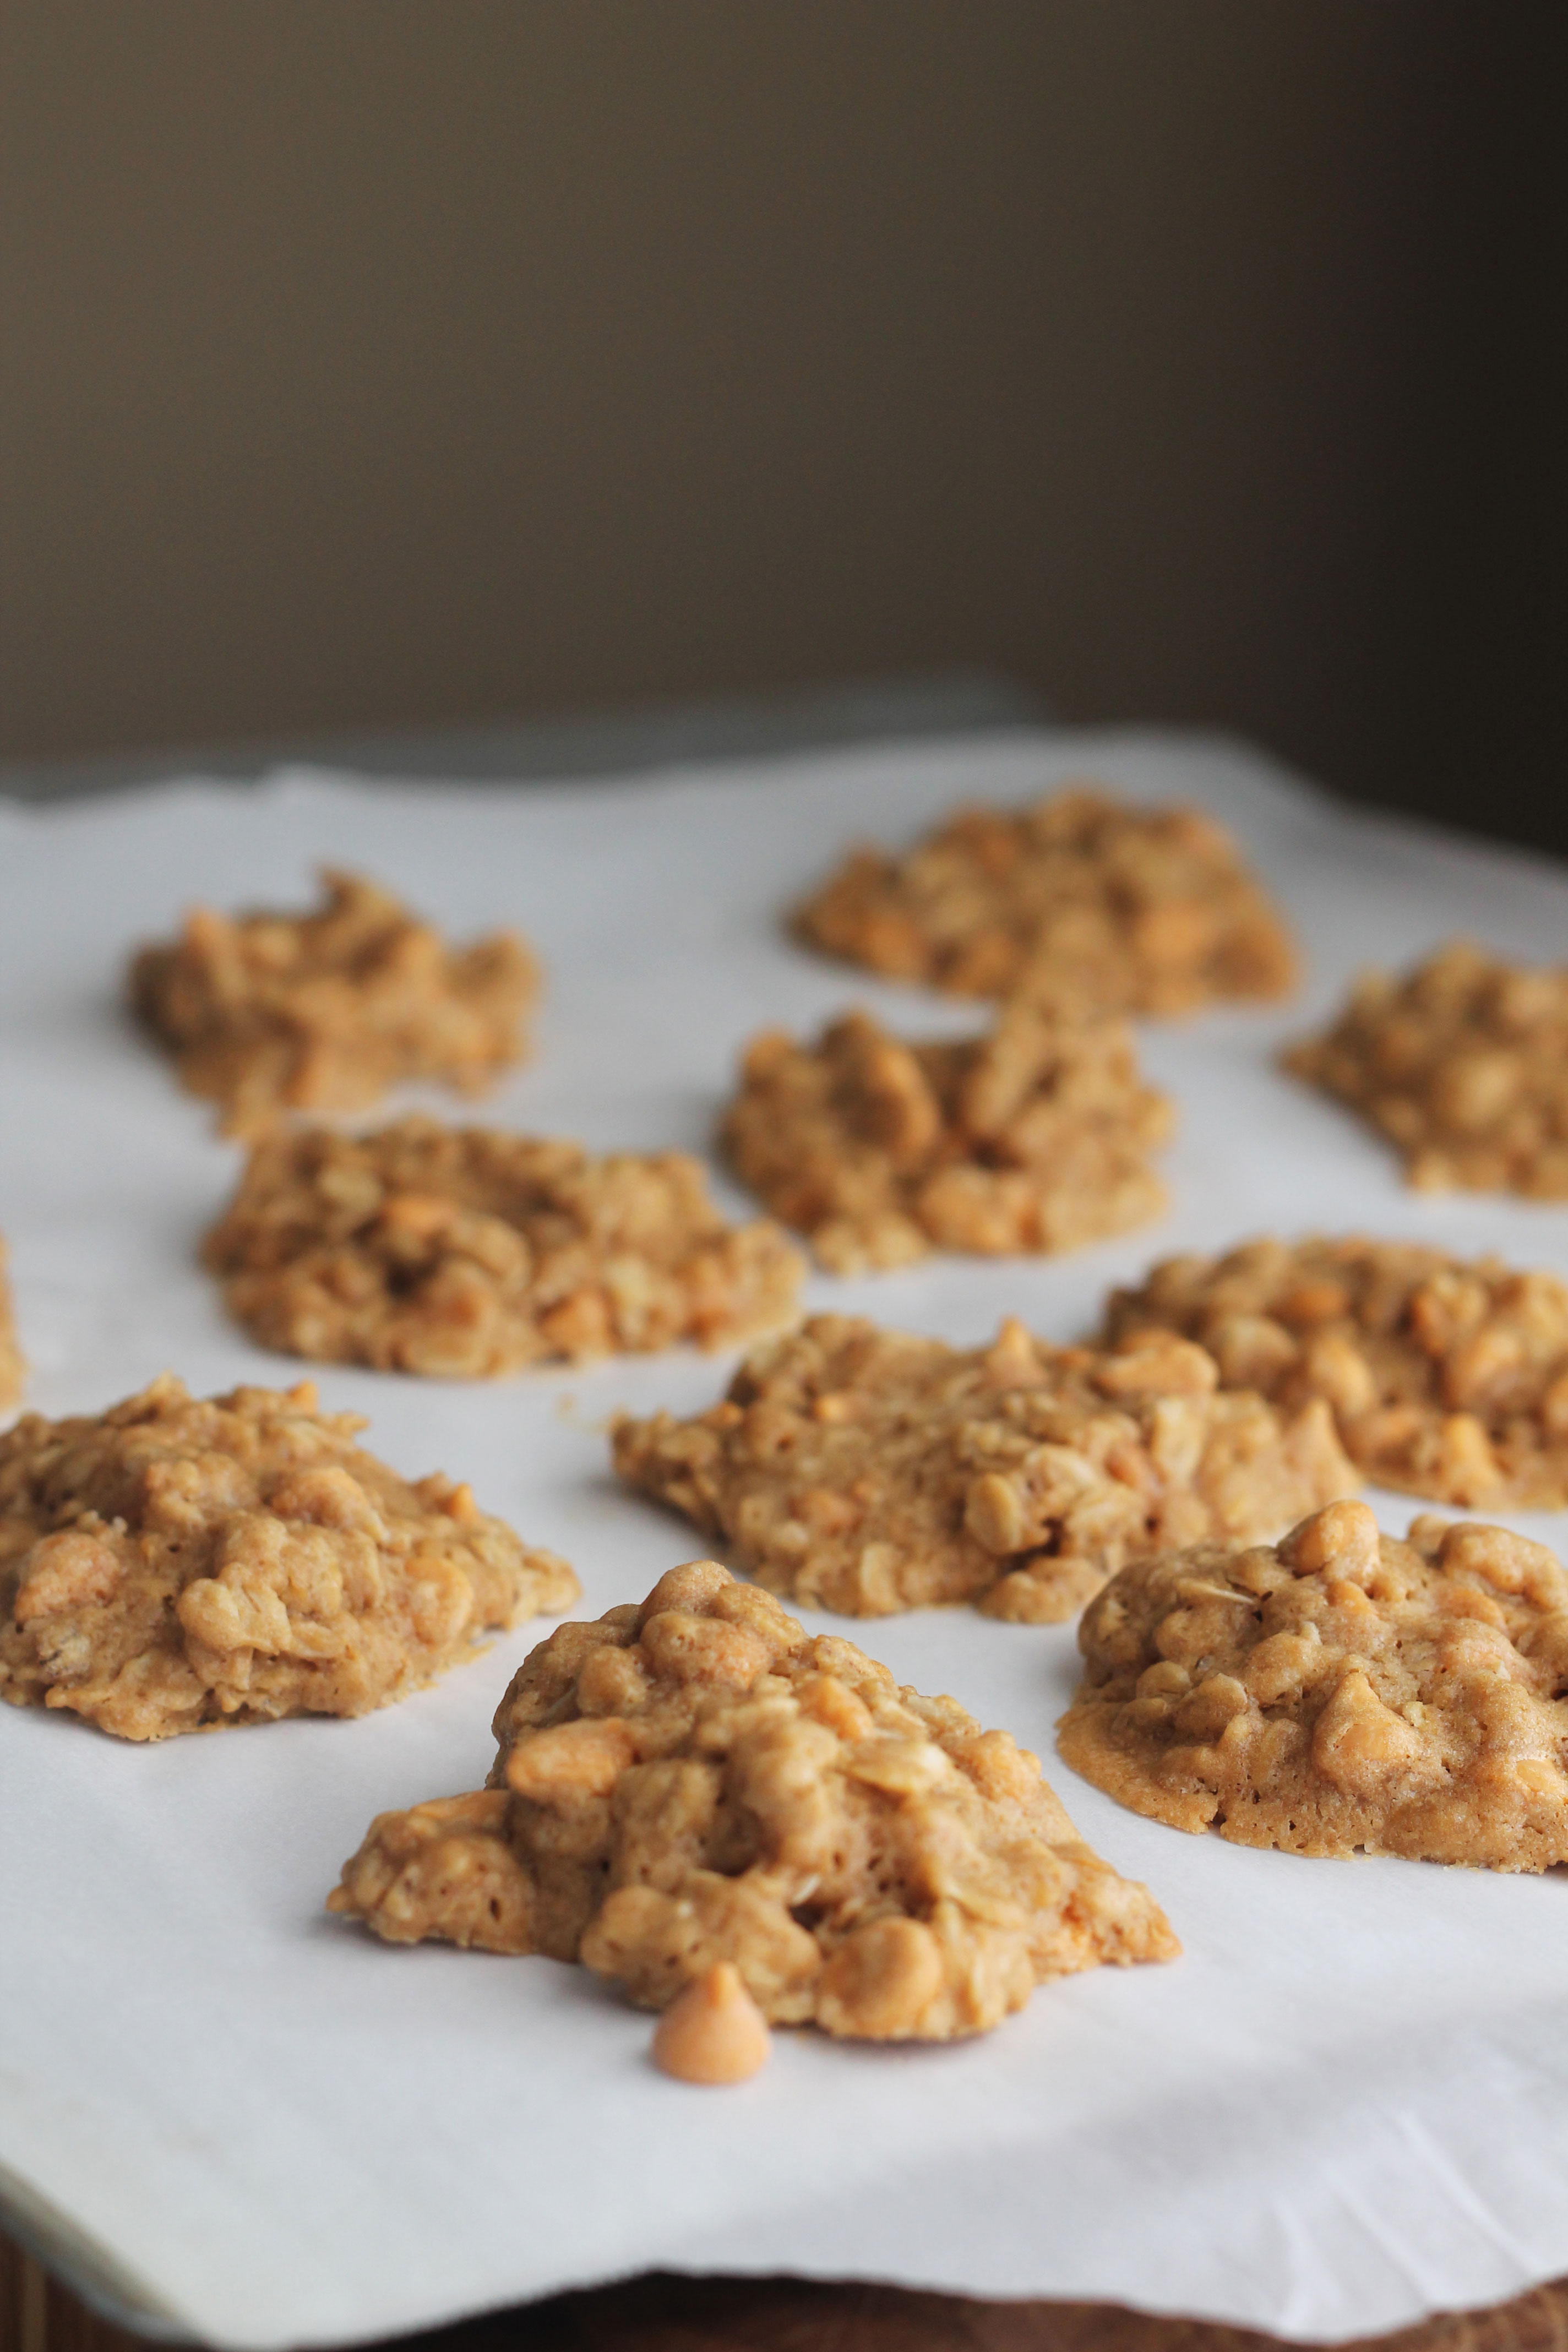 These are the best Butterscotch Oatmeal Cookies